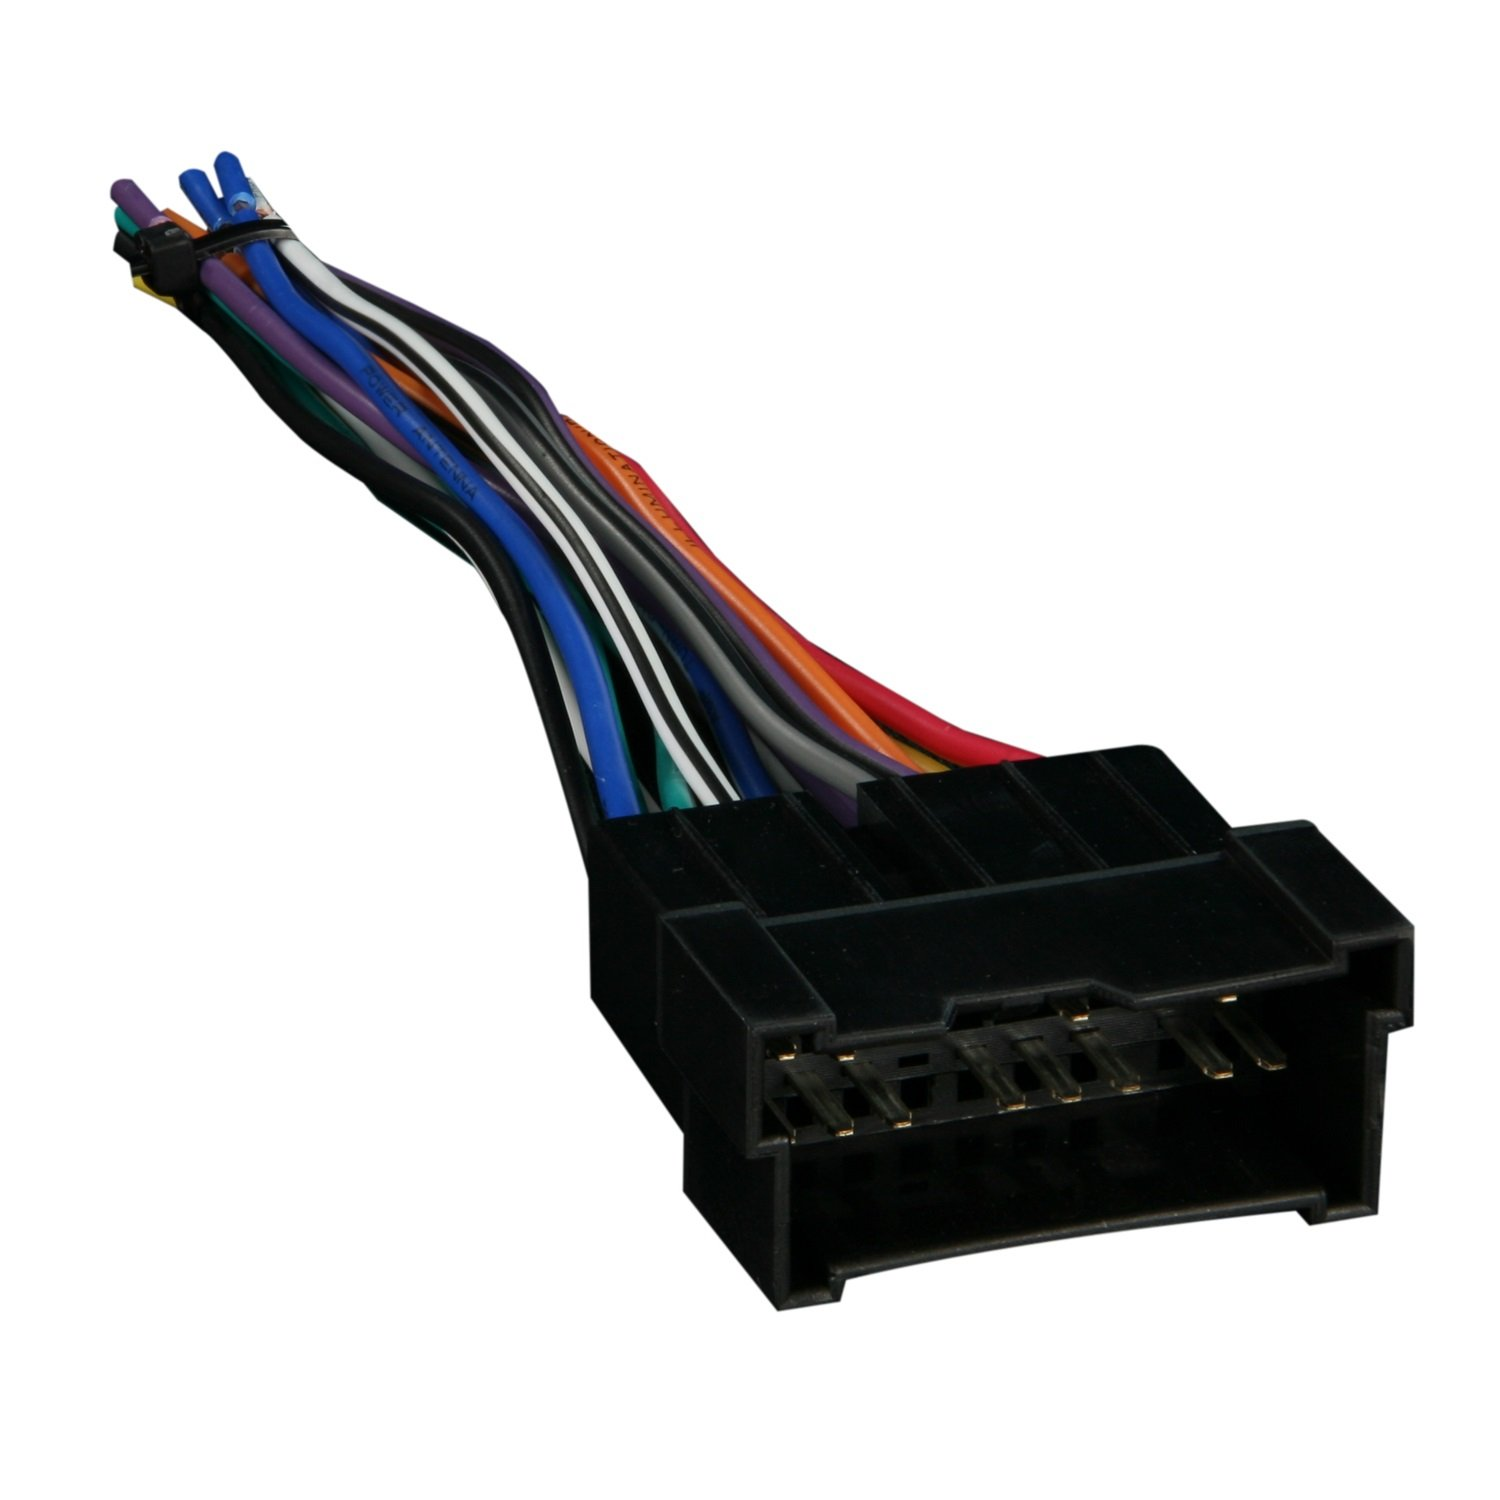 617yeBmOquL._SL1500_ amazon com metra 70 7301 radio wiring harness for hyundai kia 99  at bakdesigns.co